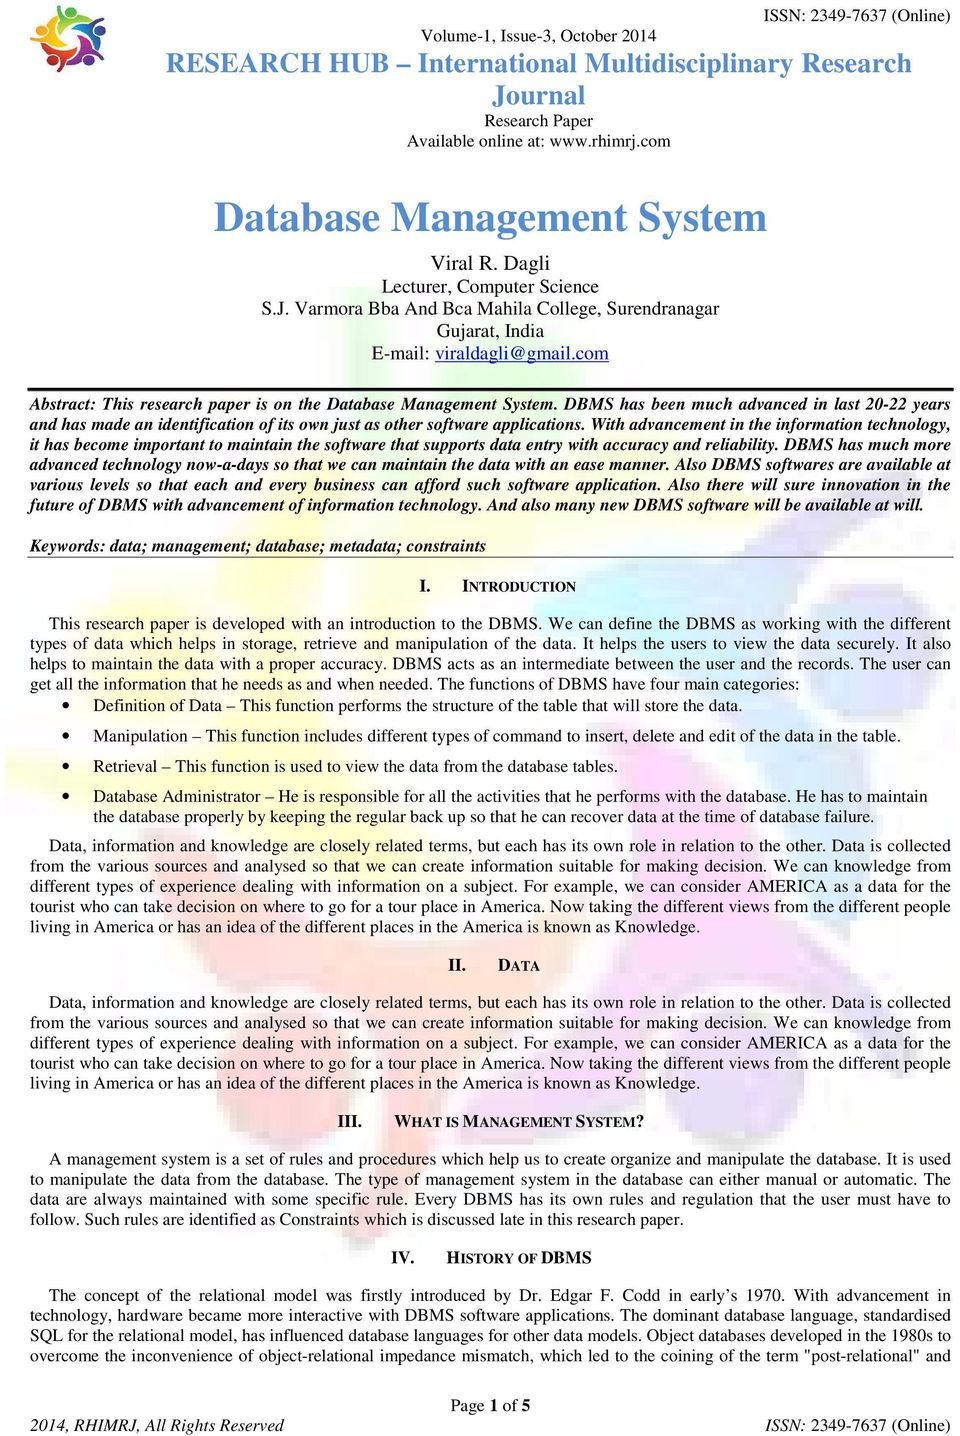 006 Advanced Database Management System Research Papers Paper Page 1 Fantastic Full